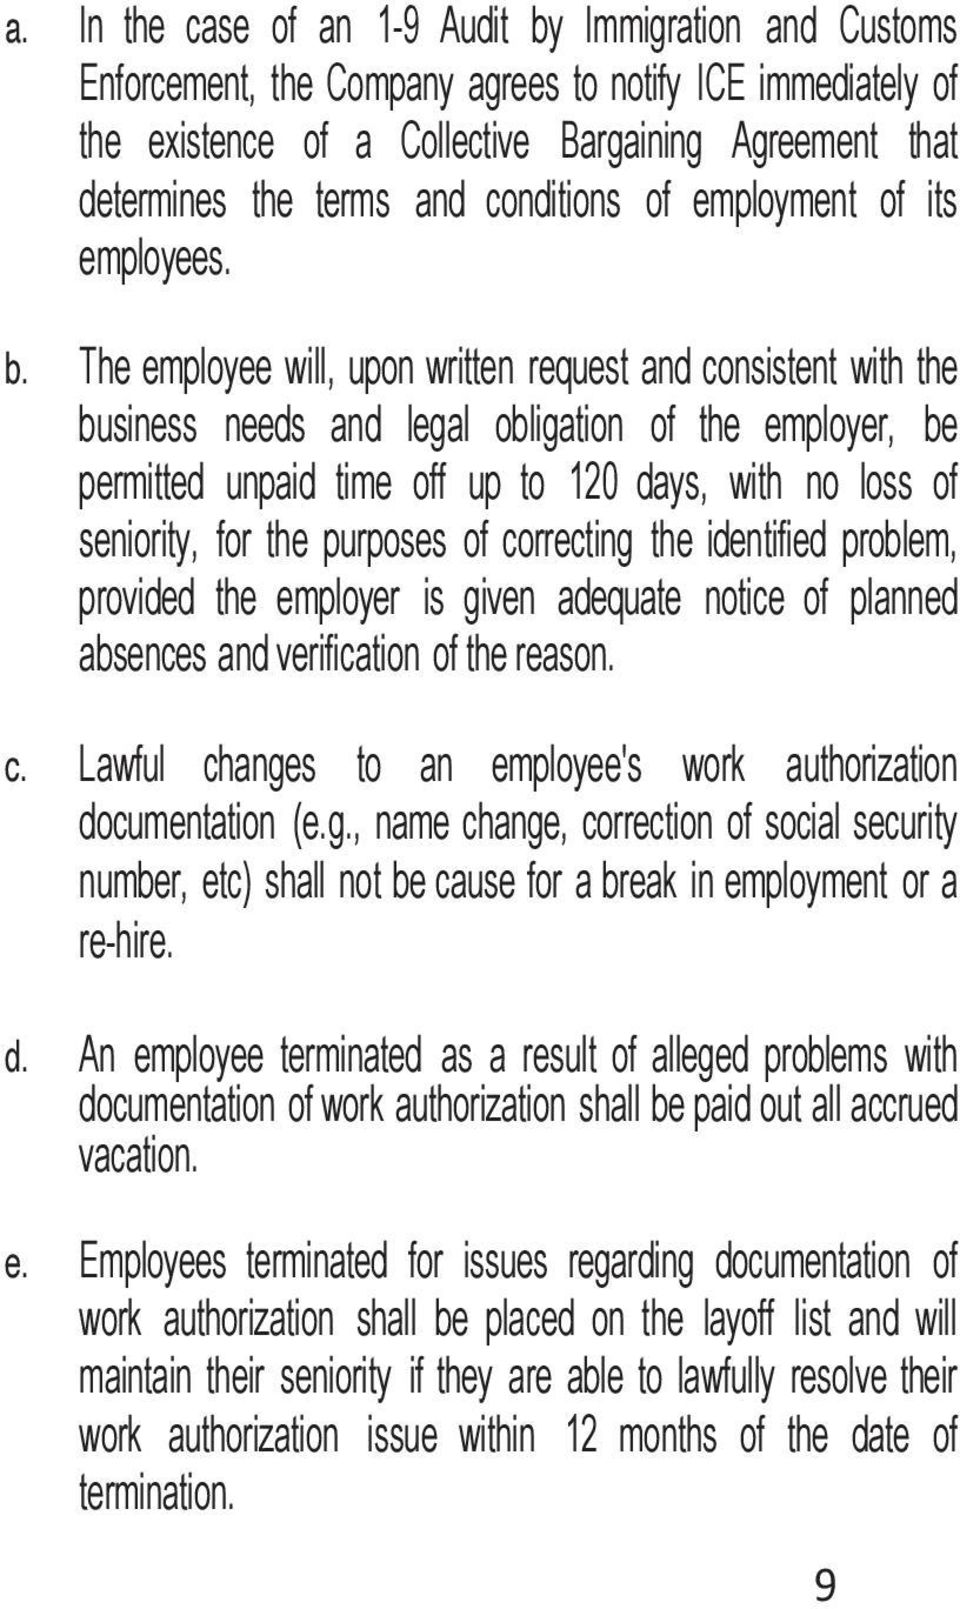 The employee will, upon written request and consistent with the business needs and legal obligation of the employer, be permitted unpaid time off up to 120 days, with no loss of seniority, for the